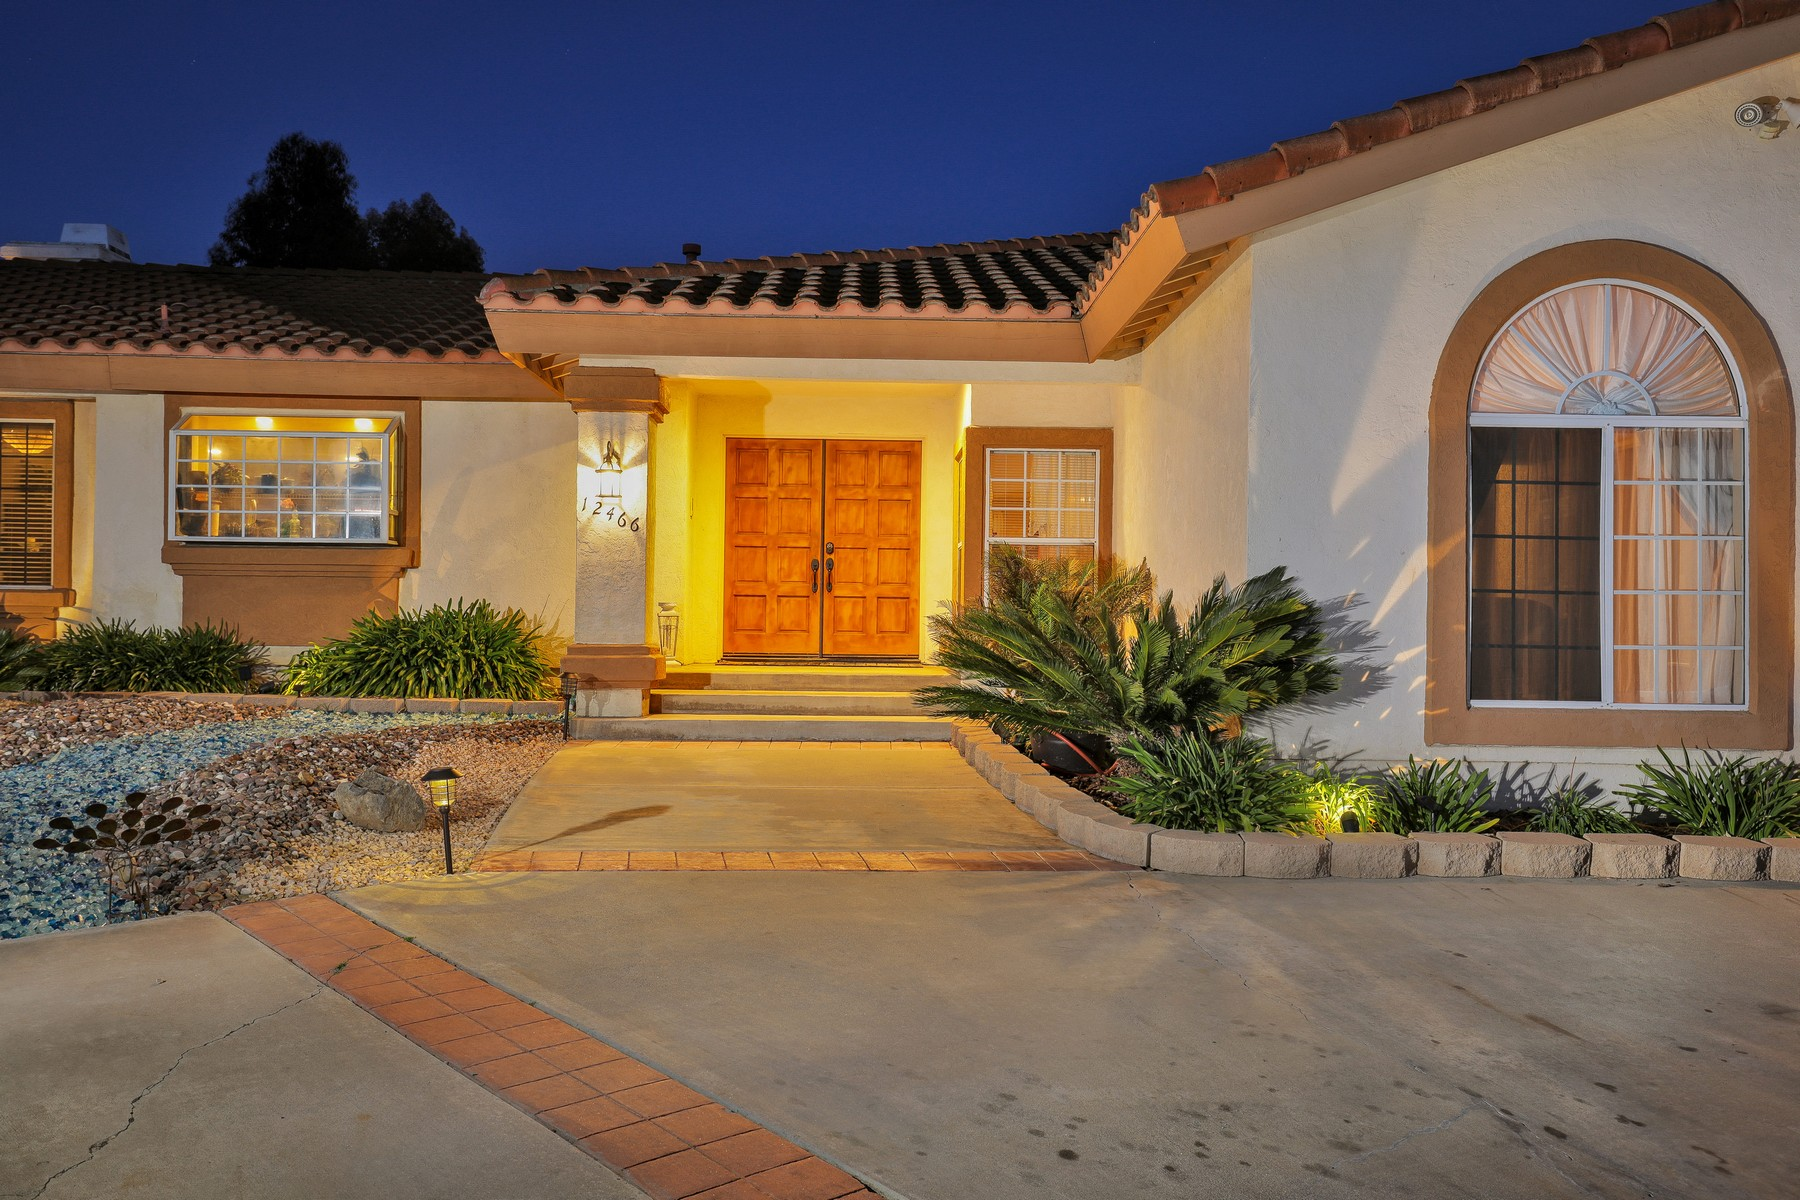 Single Family Home for Sale at 12466 Vaughn Rd. Poway, CA 92064 Poway, California, 92064 United States